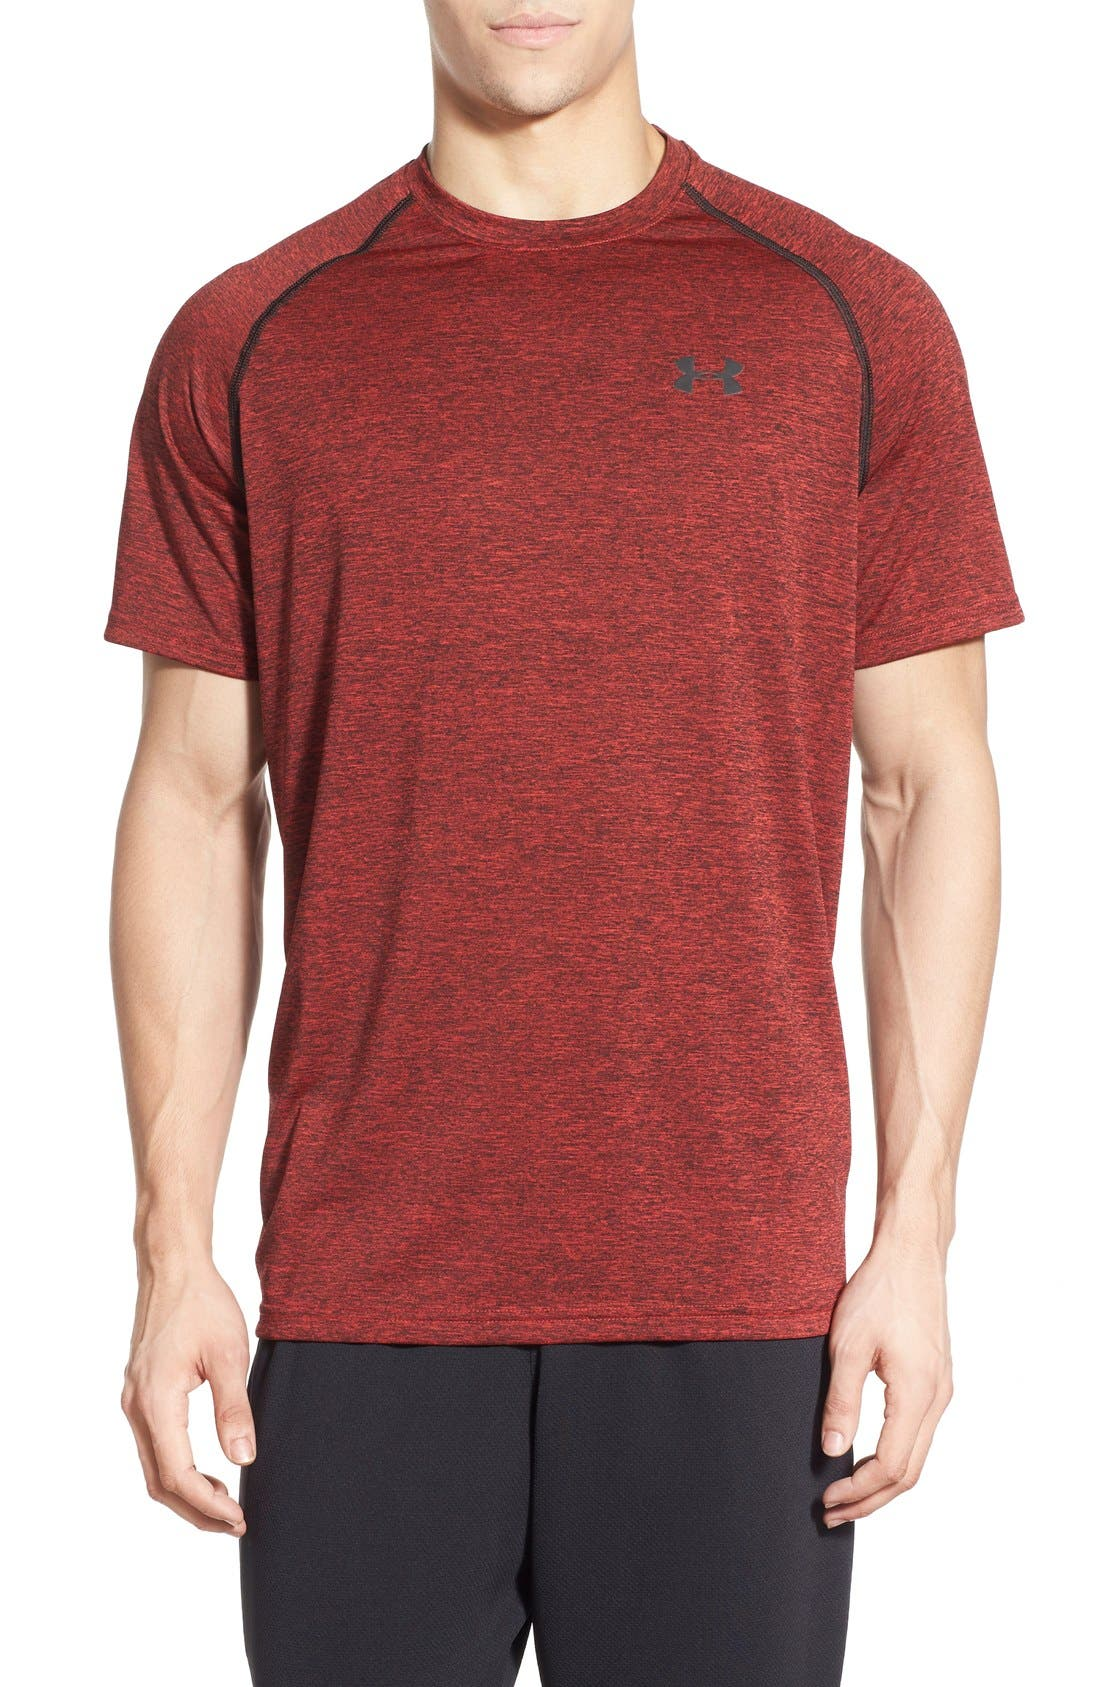 Main Image - Under Armour 'UA Tech' Loose Fit Short Sleeve T-Shirt